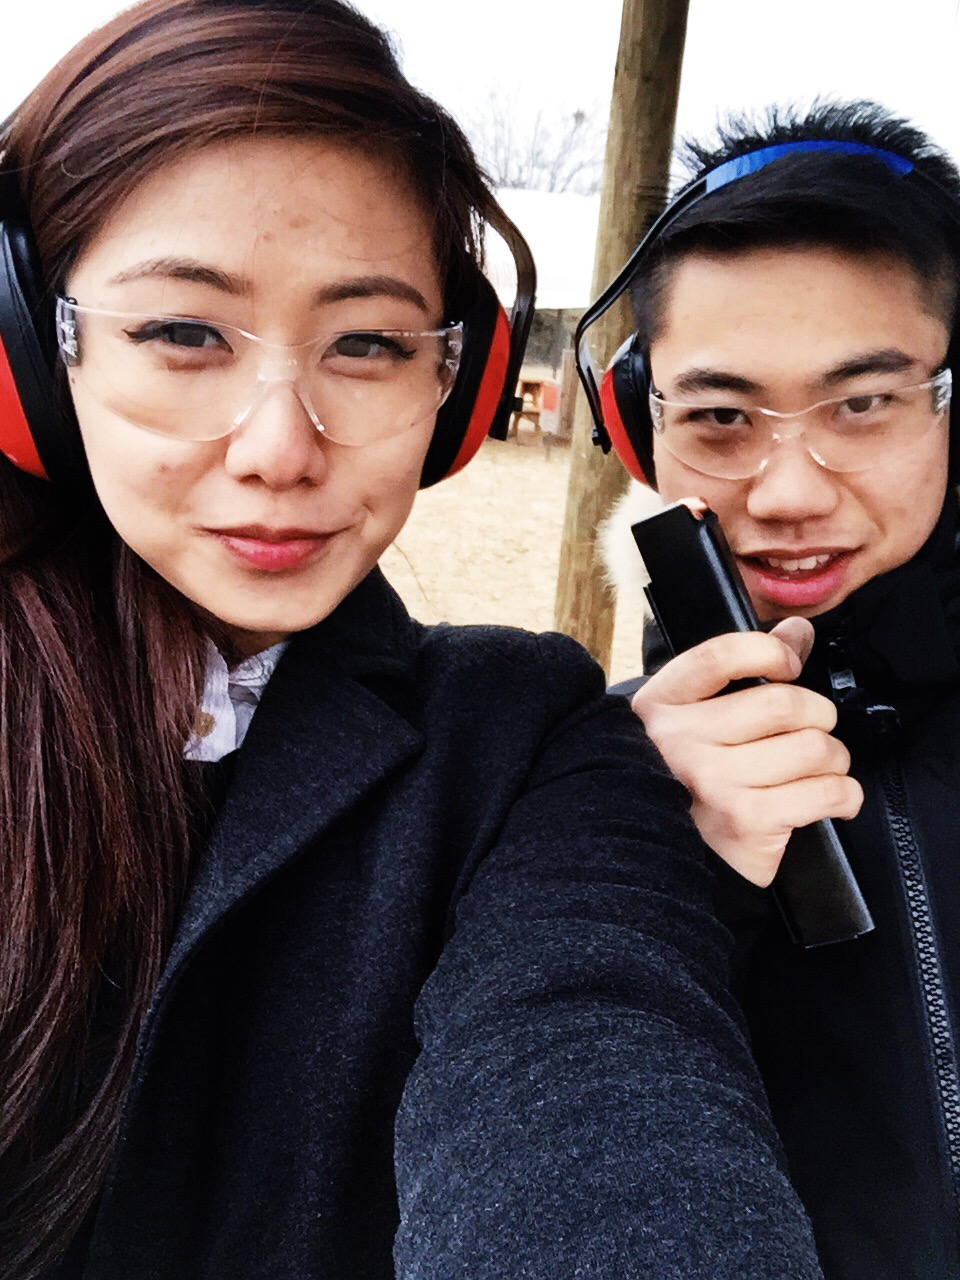 {those ear protectors functioned pretty well as earmuffs in the frigid cold.}